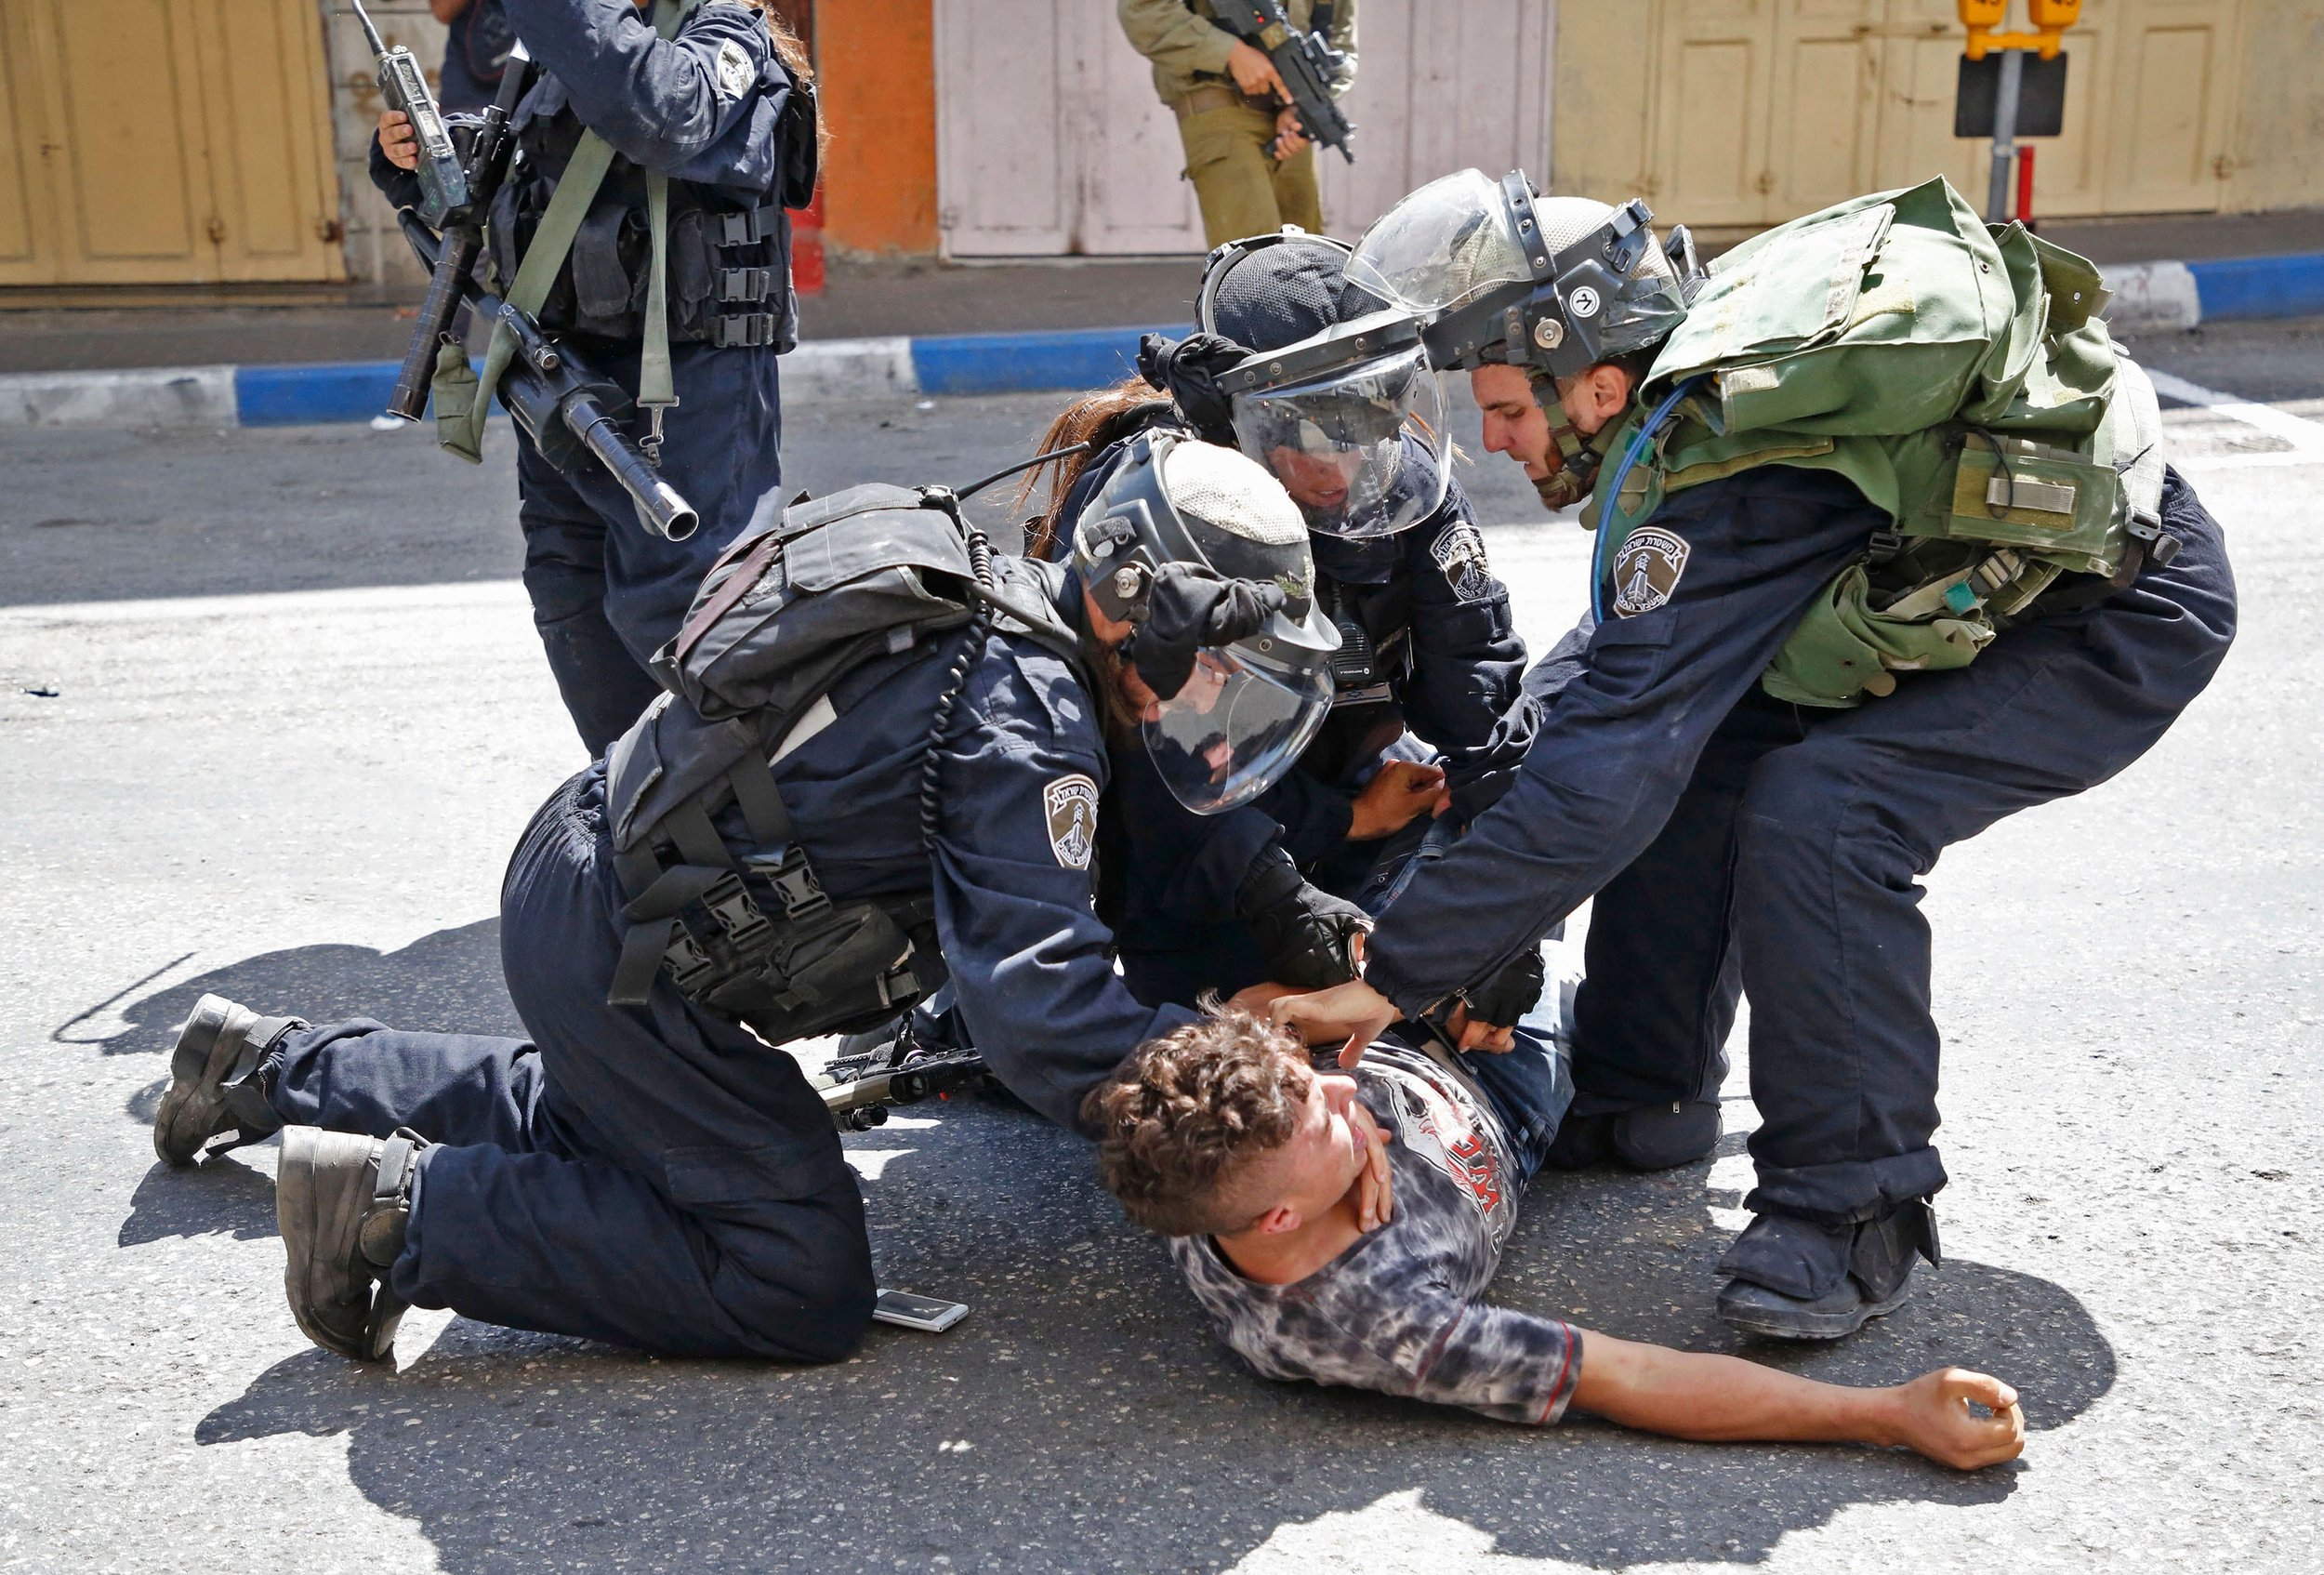 Israeli forces arrest a Palestinian youth during clashes between demonstrators and security forces in the city of Hebron in the Israeli-occupied West Bank, on July 28, 2017. Photo: Hazem Bader/AFP/Getty Images